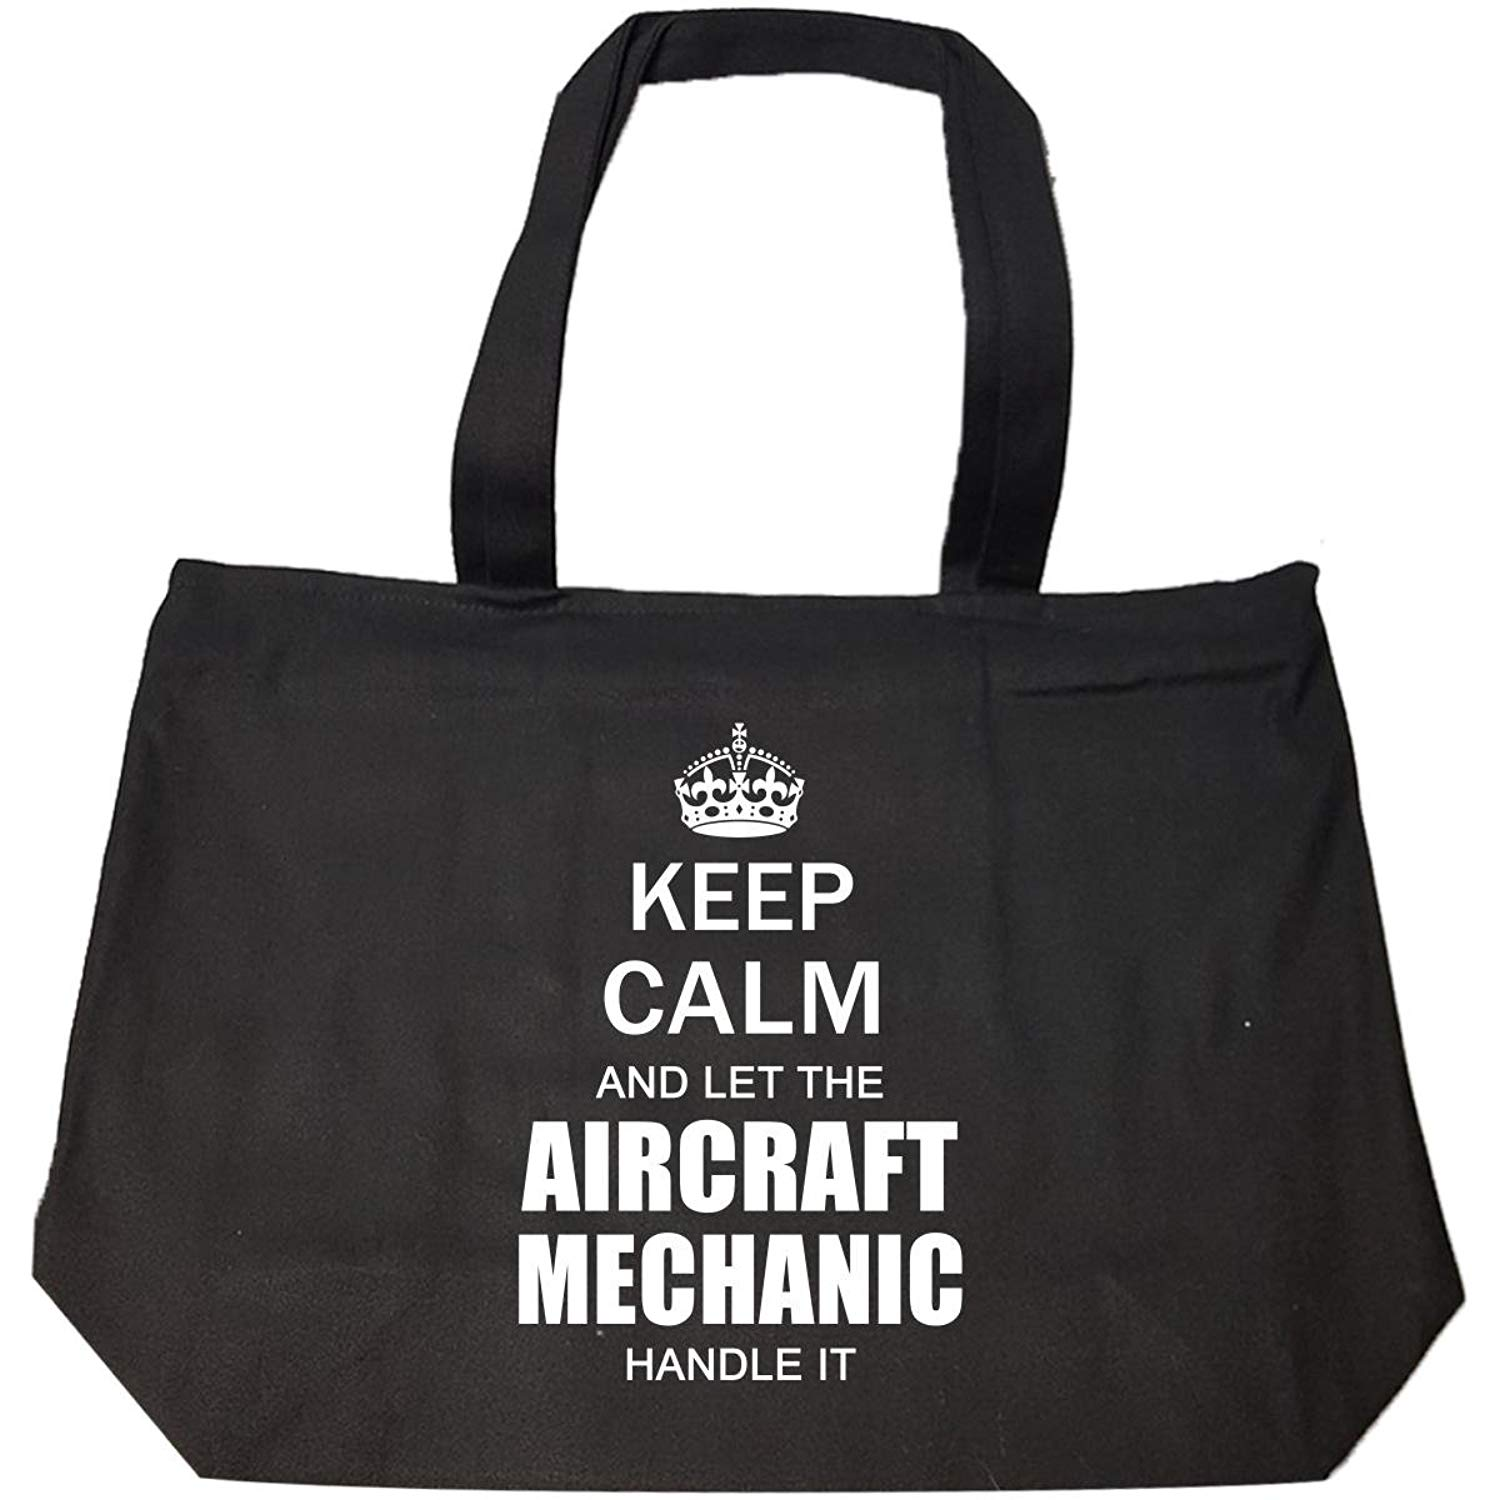 Keep Calm And Let The Aircraft Mechanic Handle It Funny Gift - Tote Bag With Zip